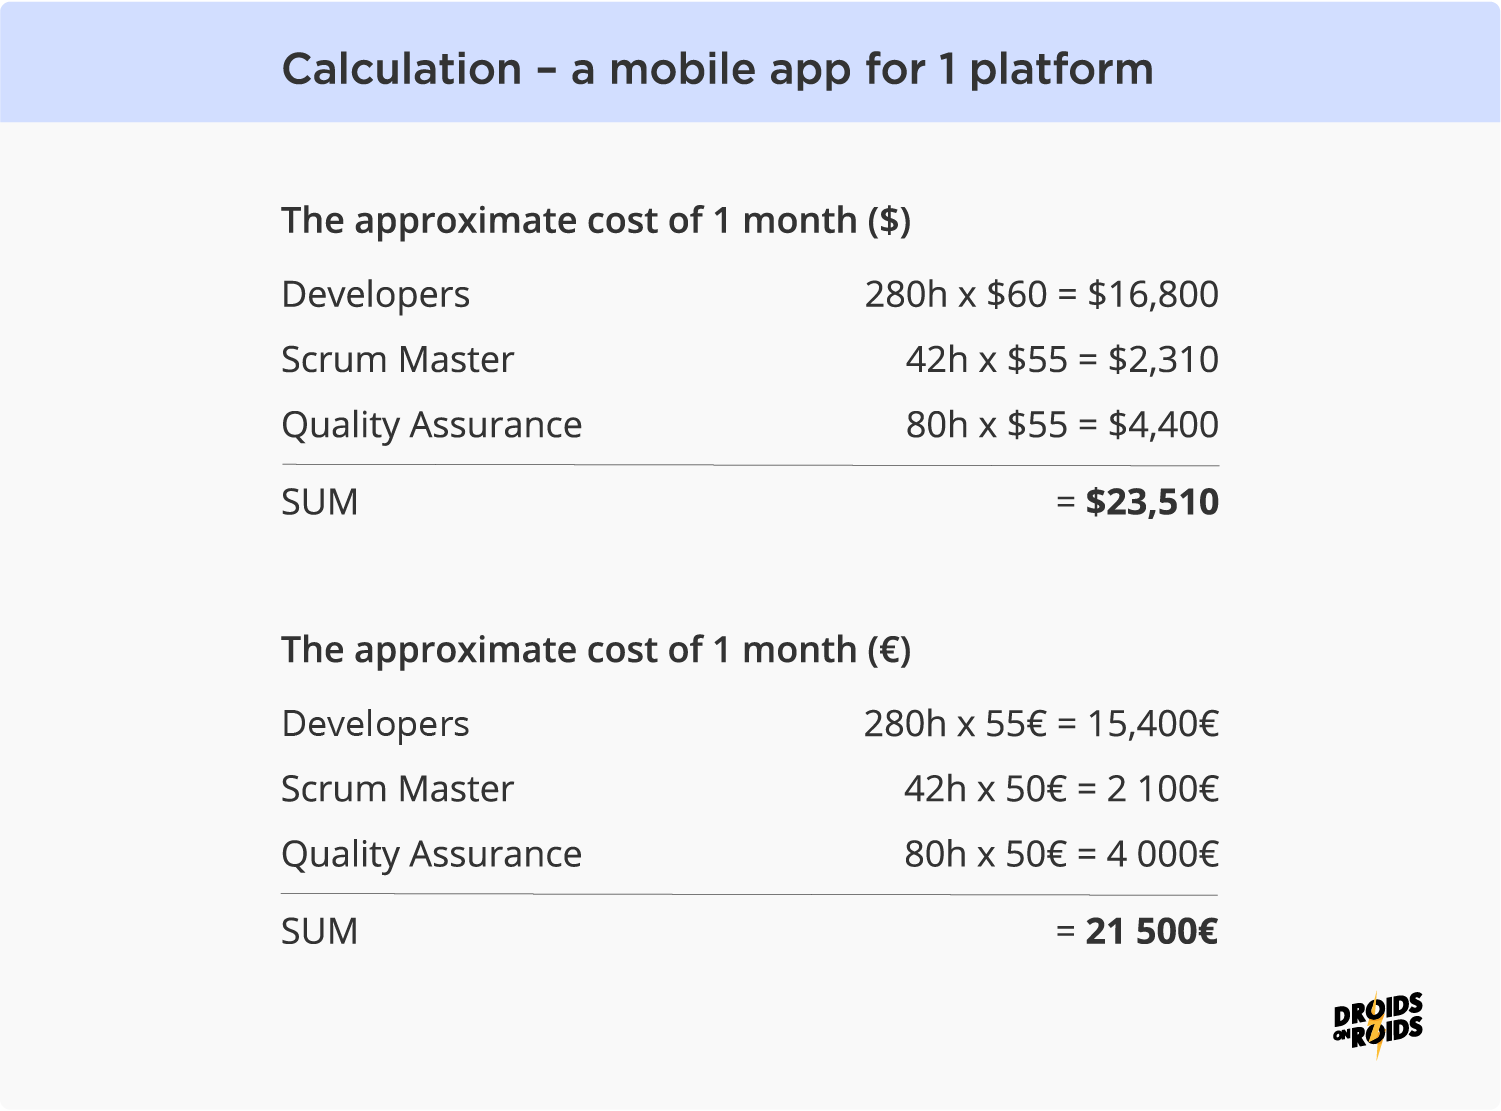 App development cost - calculations per 1 month